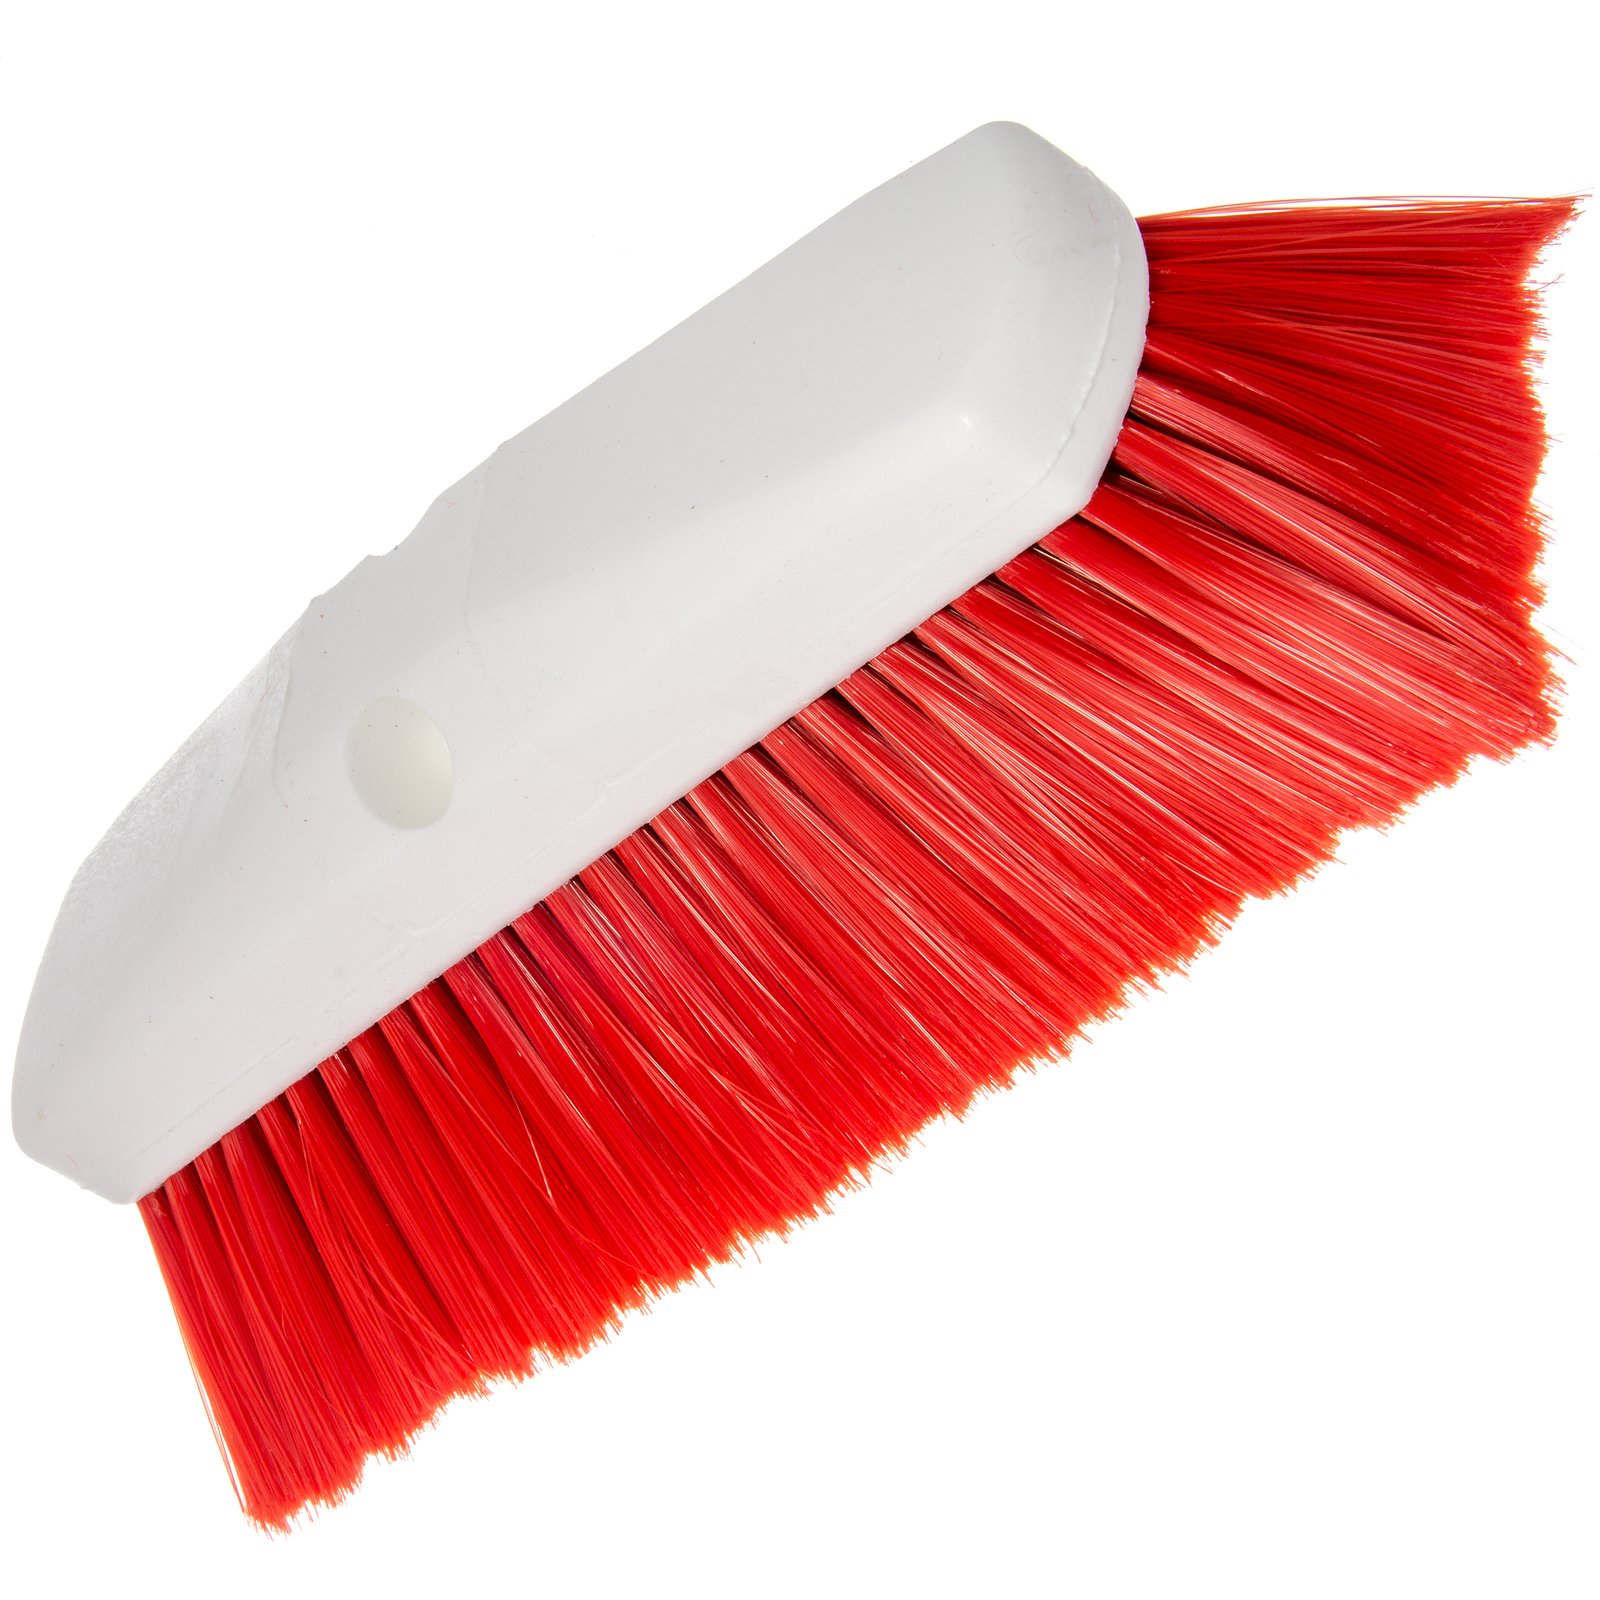 BRUSH WALL AND EQUIPMENT RED 10""